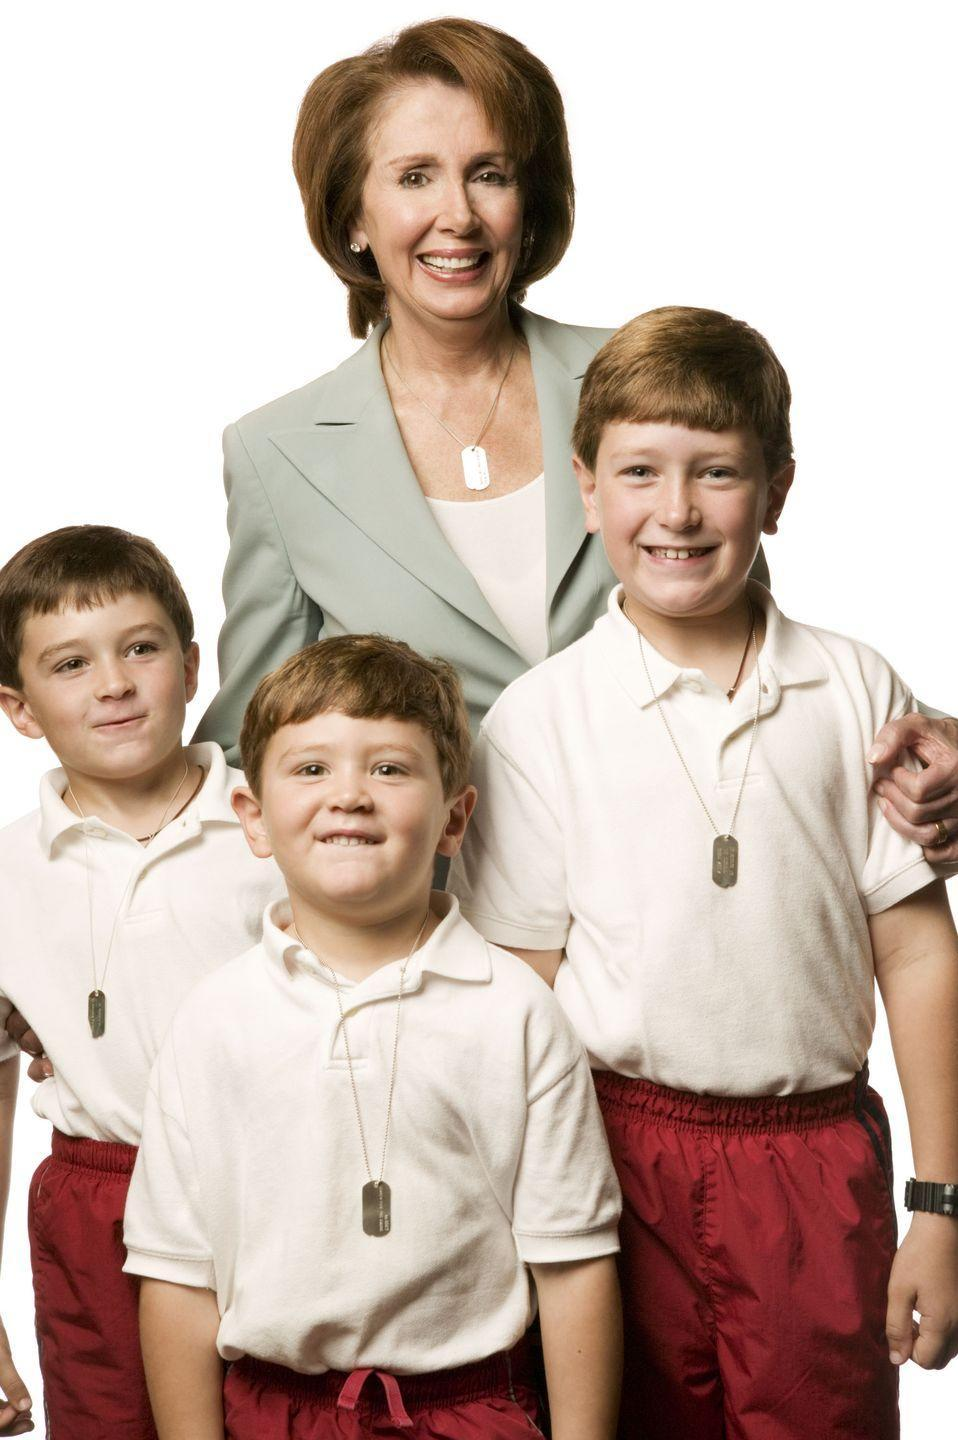 <p>Pelosi poses for a photo with three of her grandchildren in a portrait series for the Search for the Cause campaign, which benefits cancer research. </p>